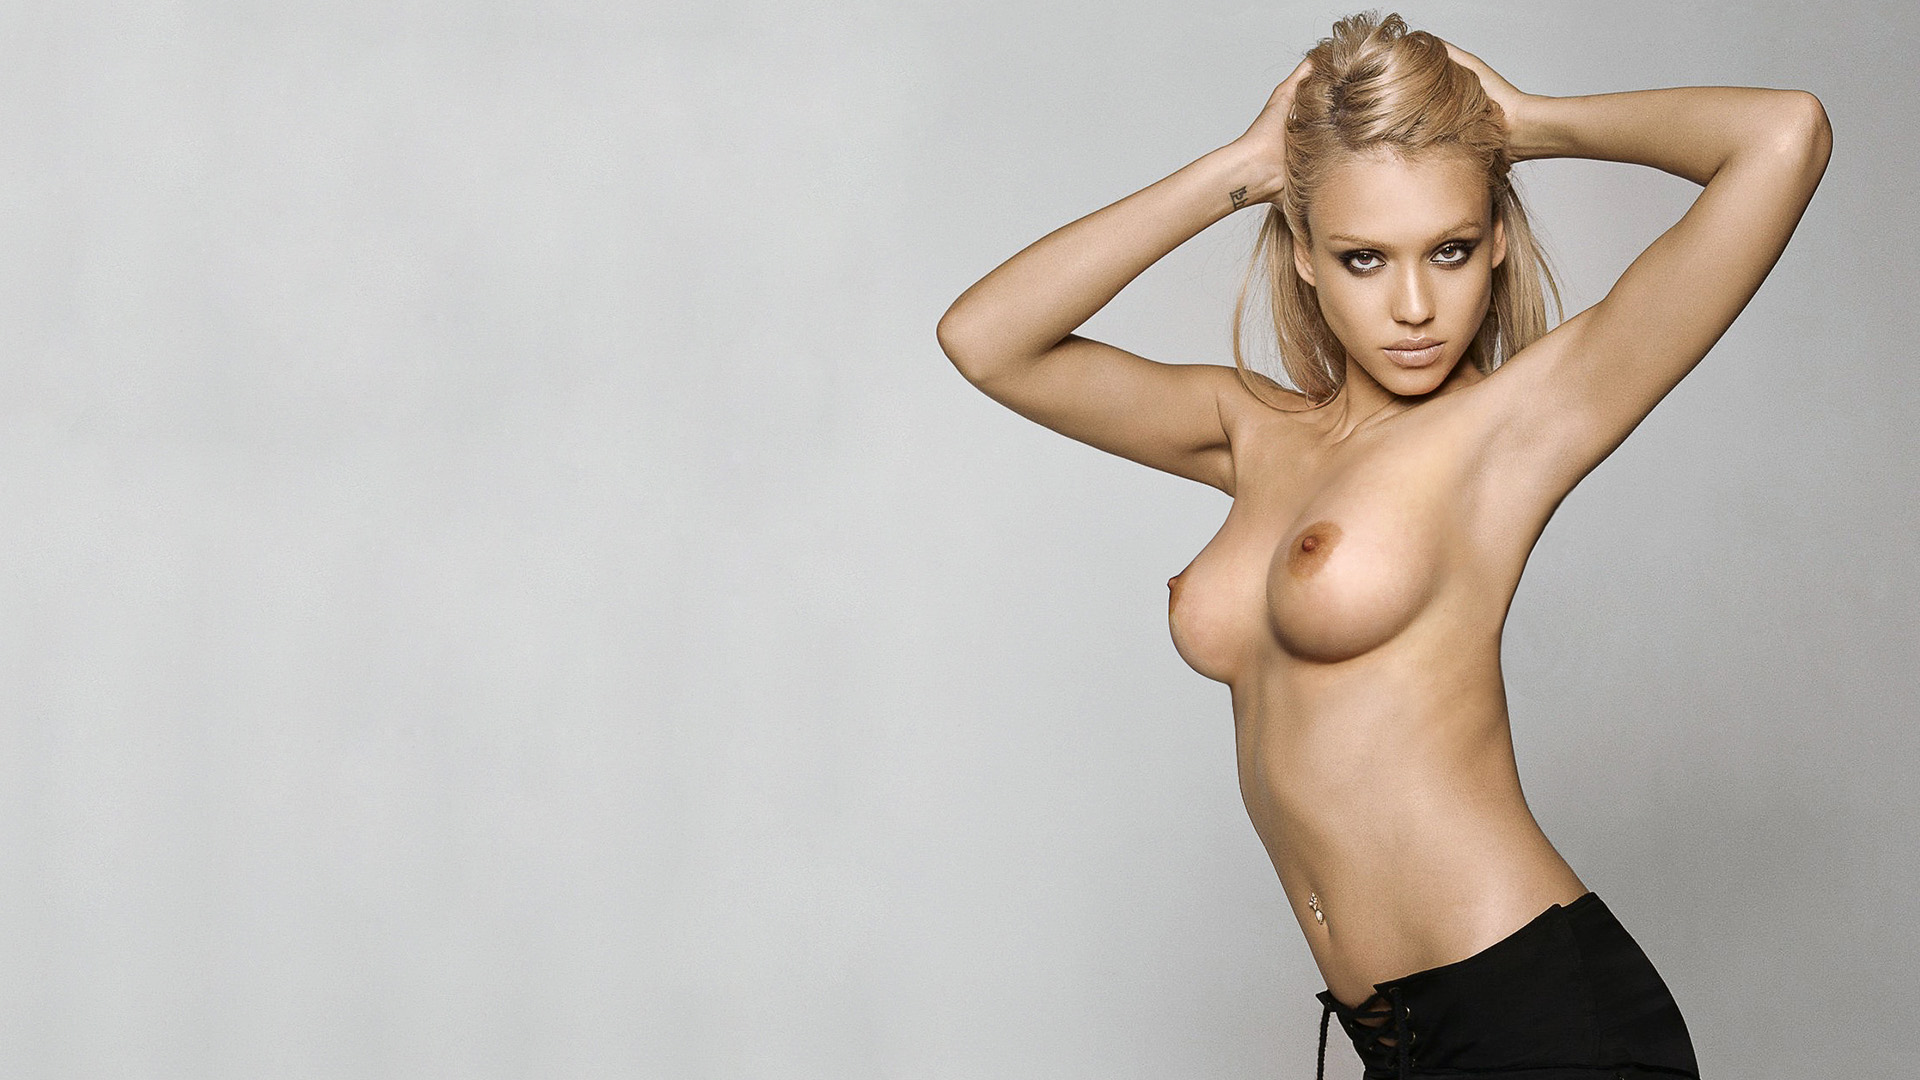 Hot chick in the nude